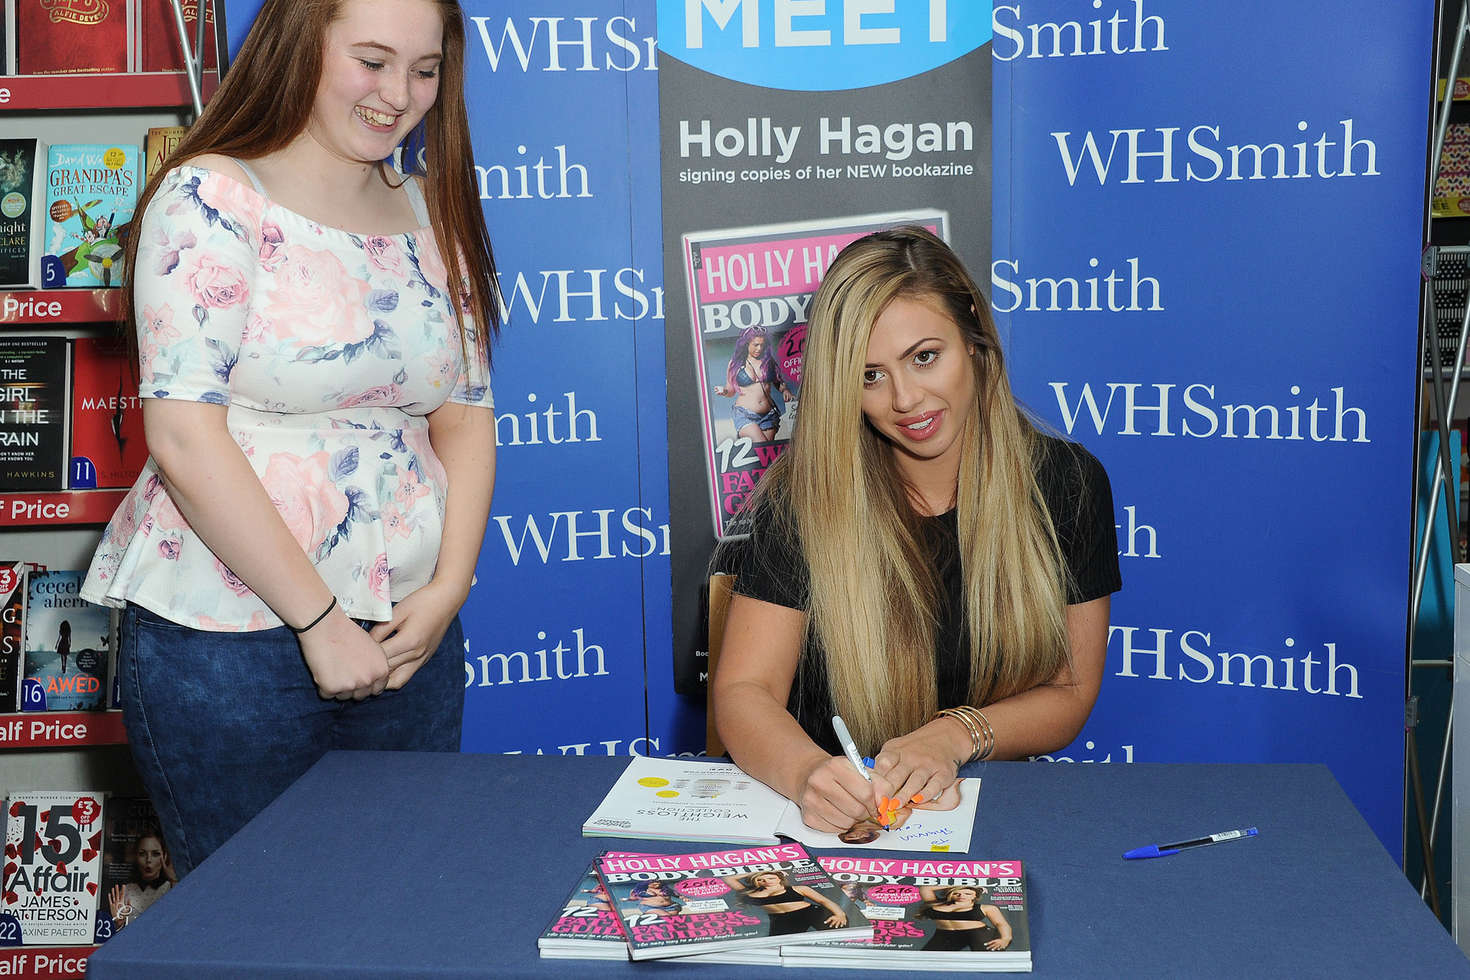 Holly Hagan Signing copies of her latest bookazine in Bexleyheath